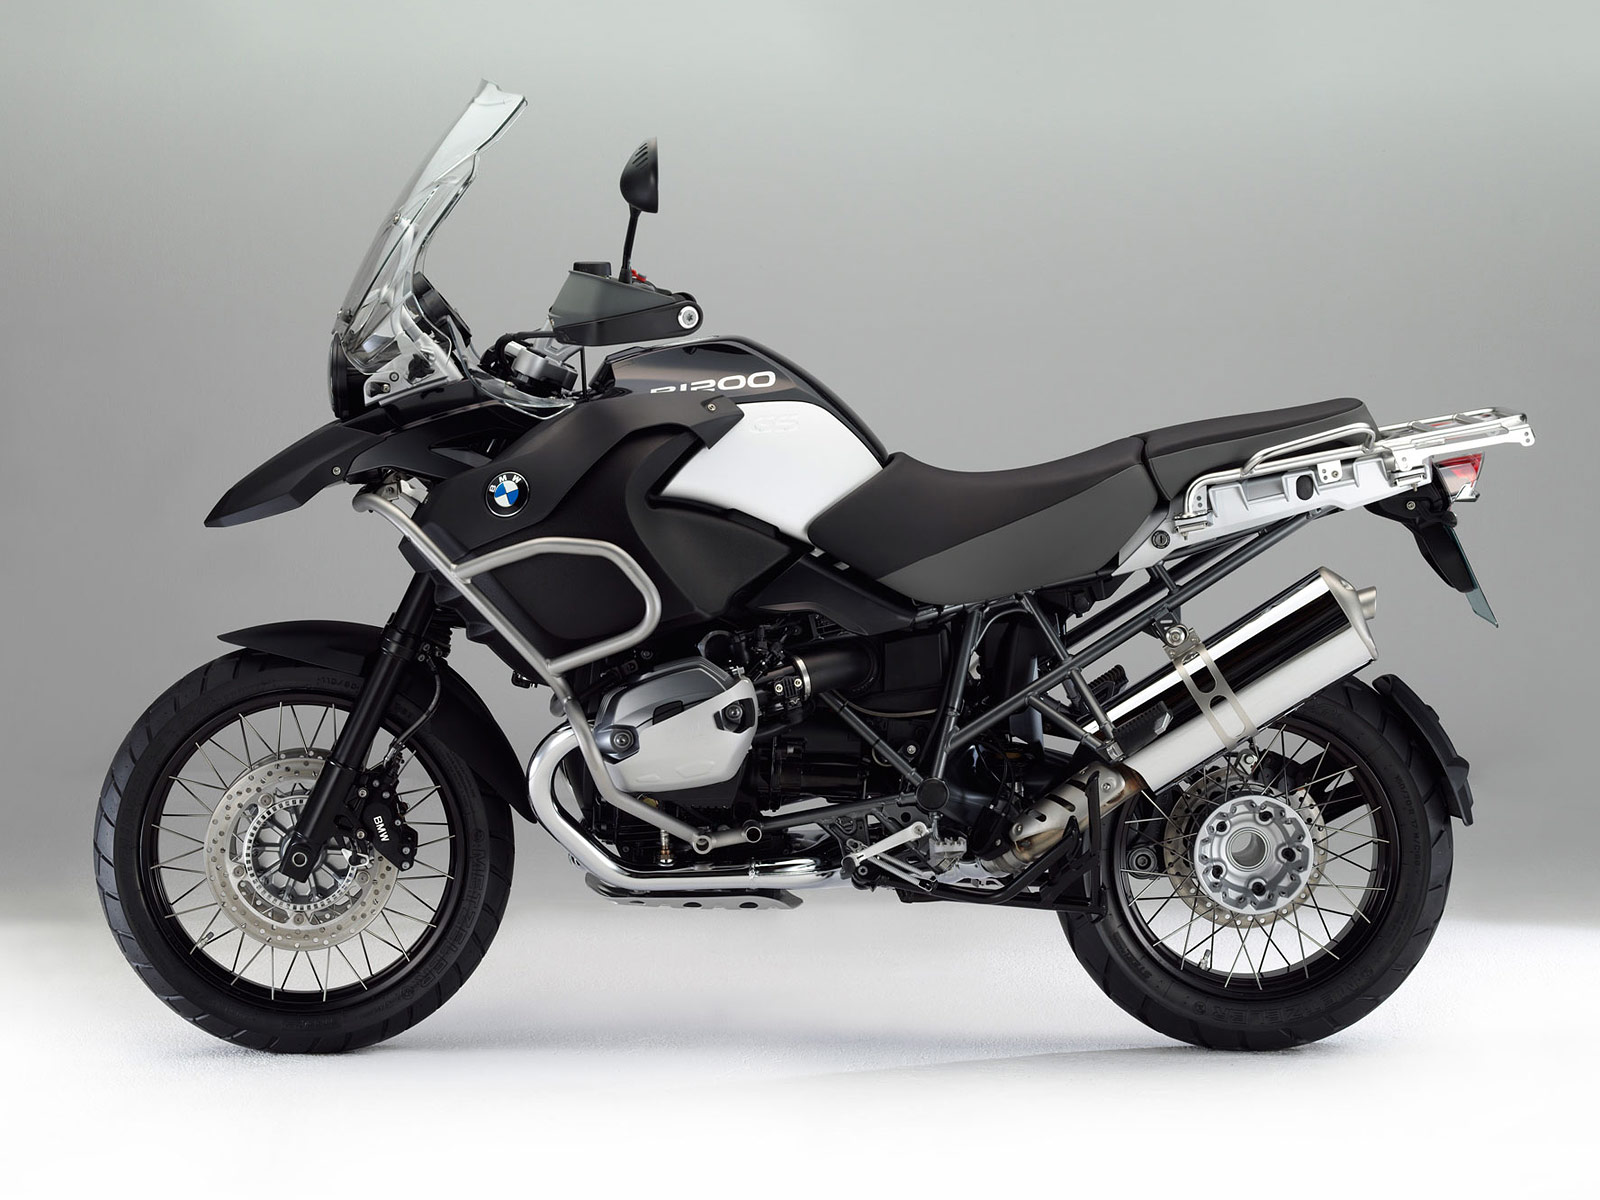 bmw r 1200 gs adventure triple black-pic. 2